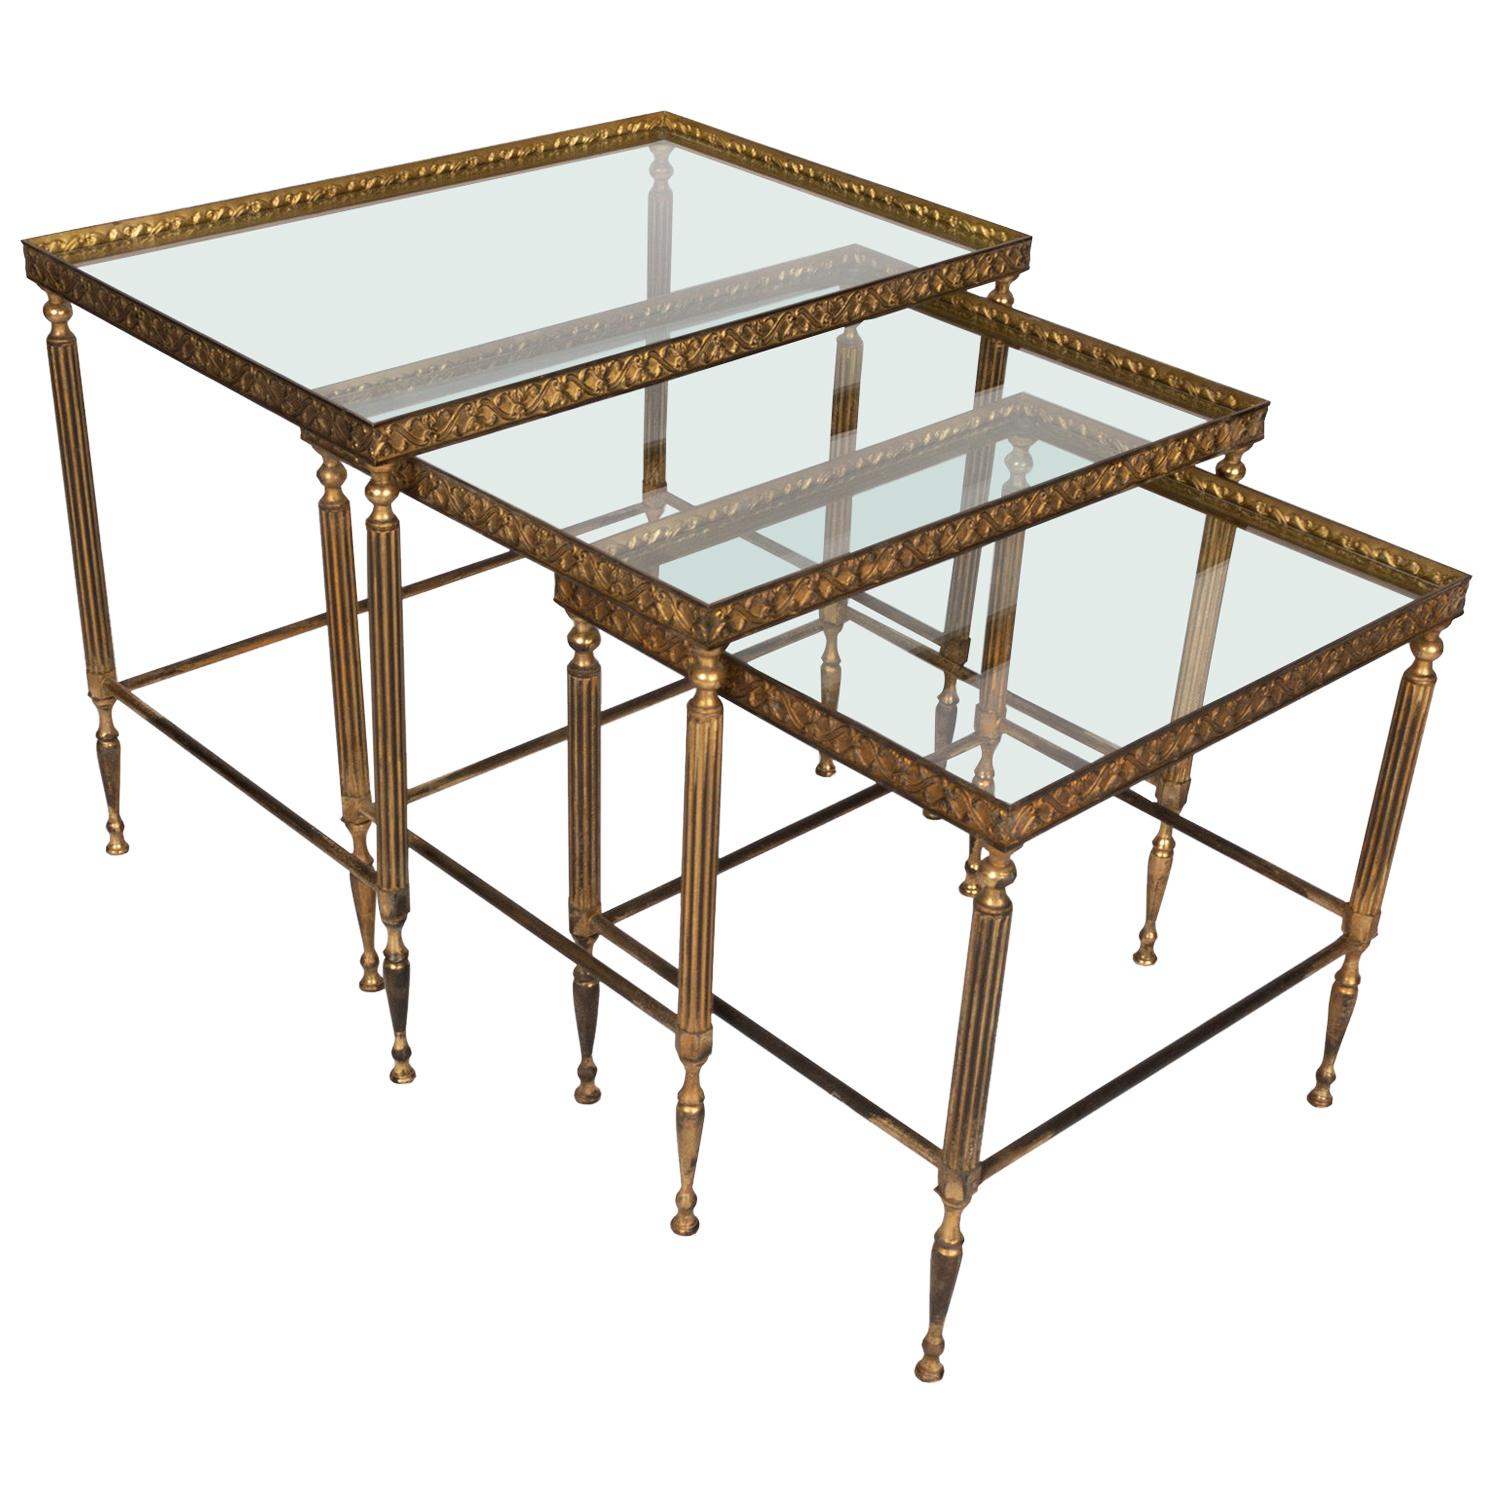 Midcentury Bronze Brass and Glass Nesting Tables by Maison Baguès, France